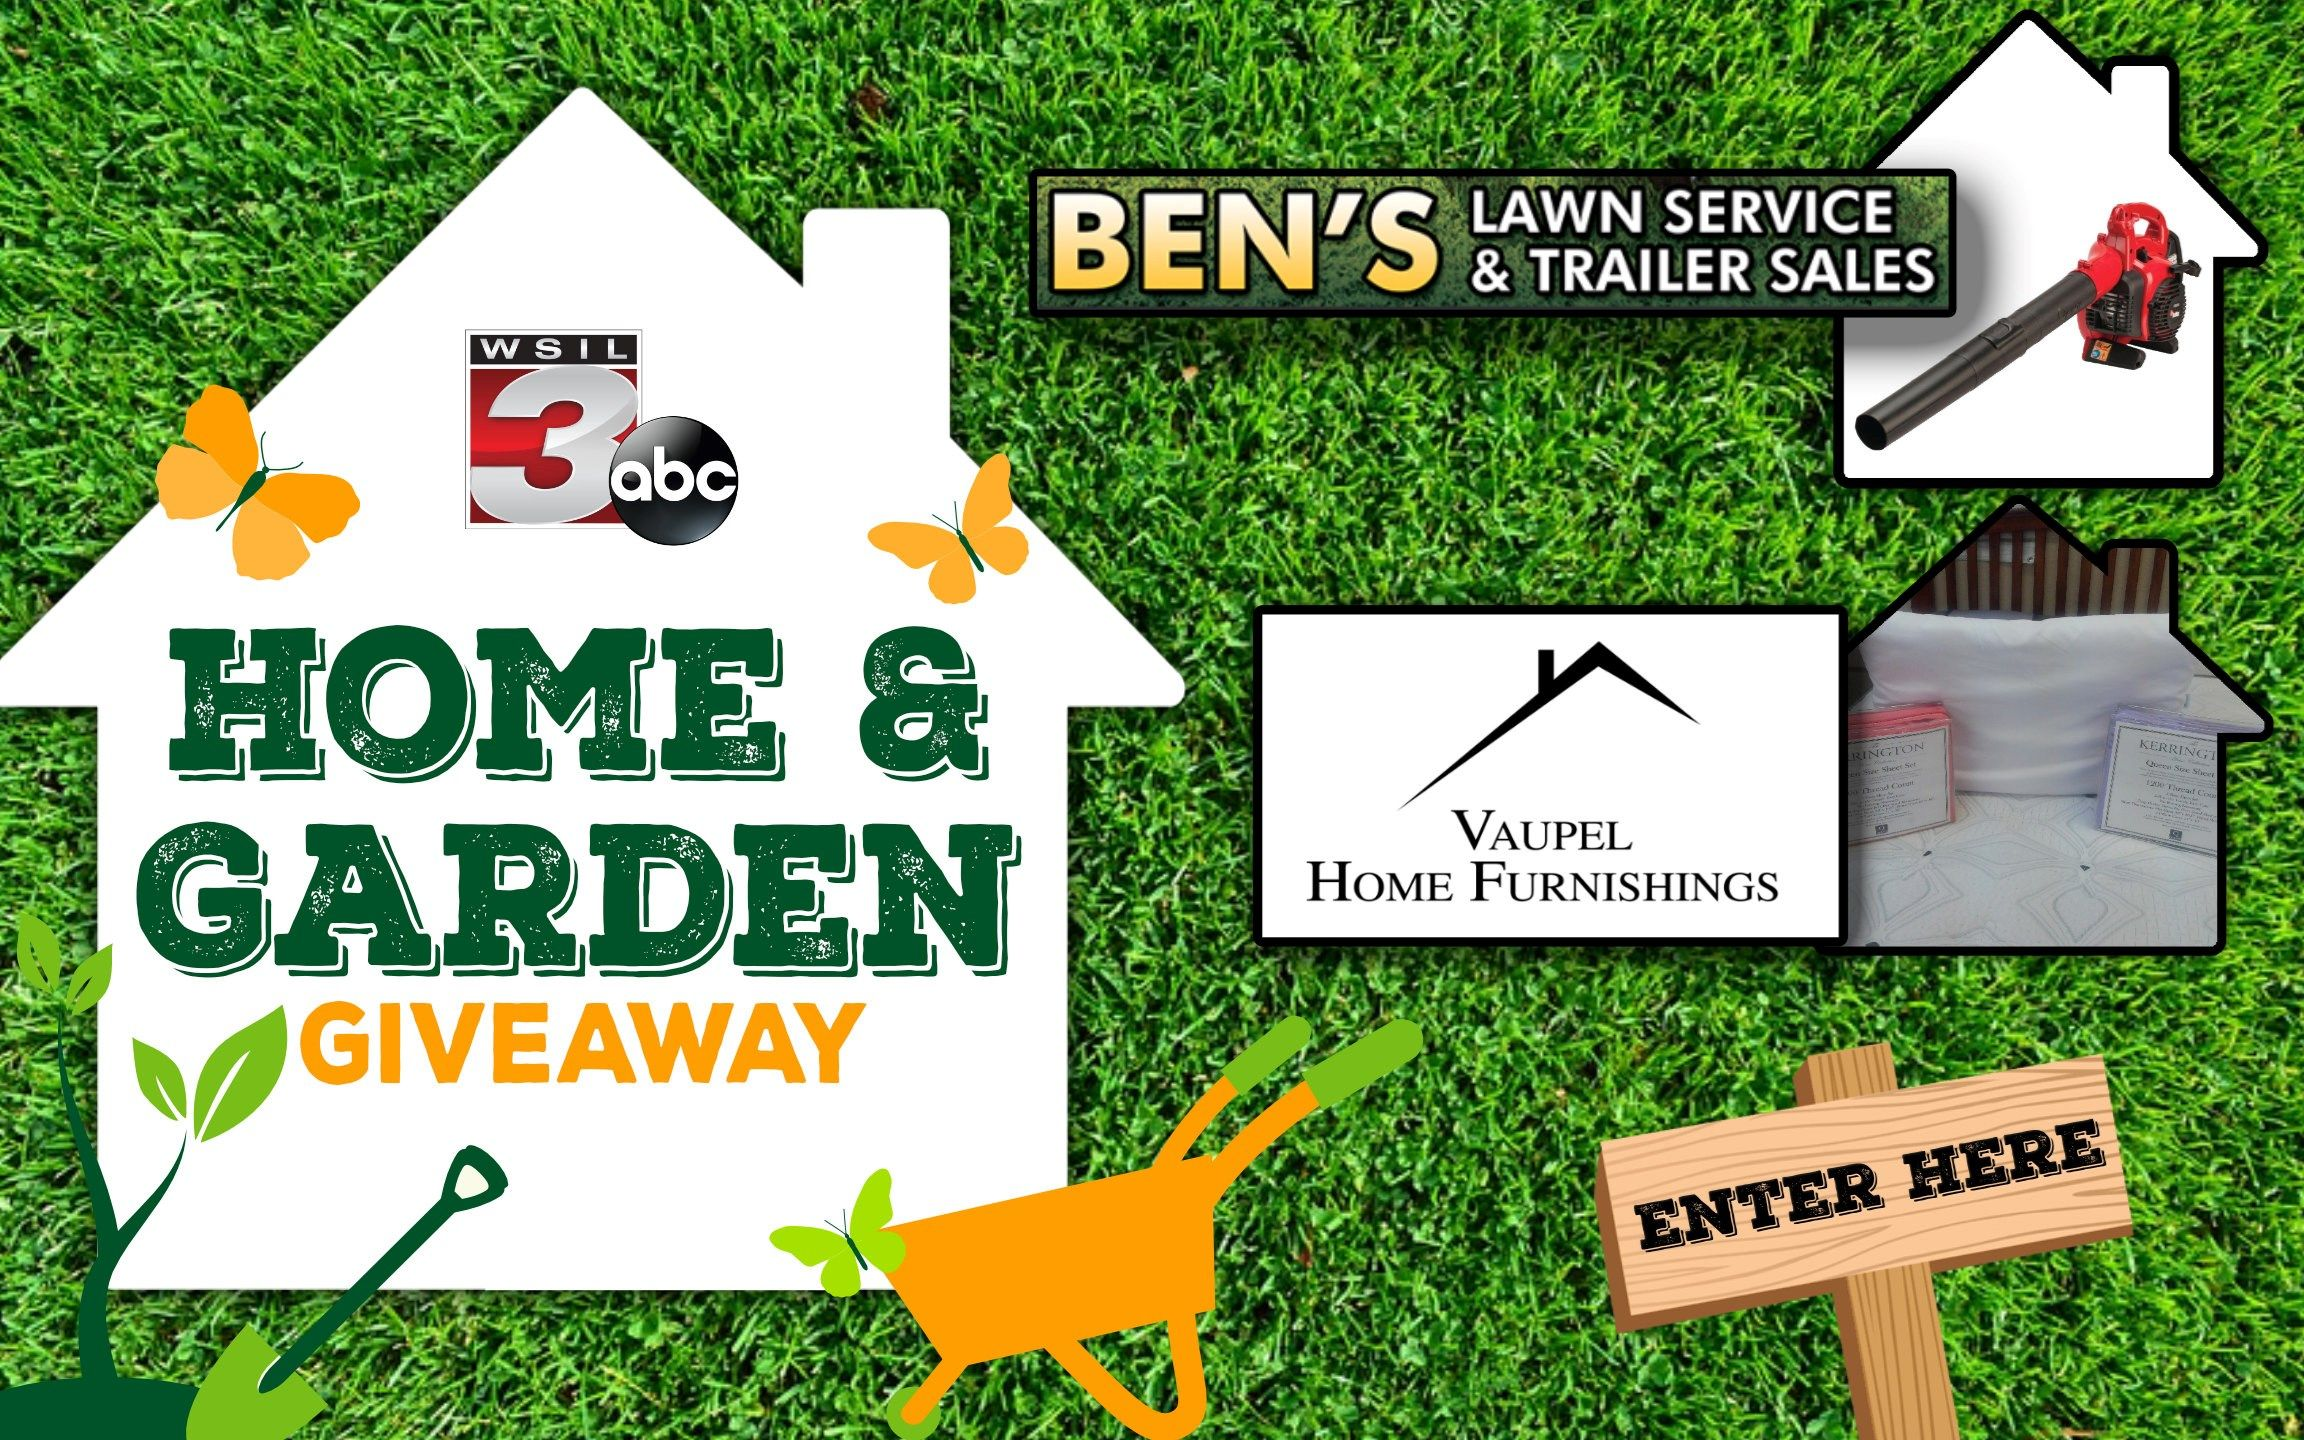 Home and Garden Giveaway Spring is a time for plans and